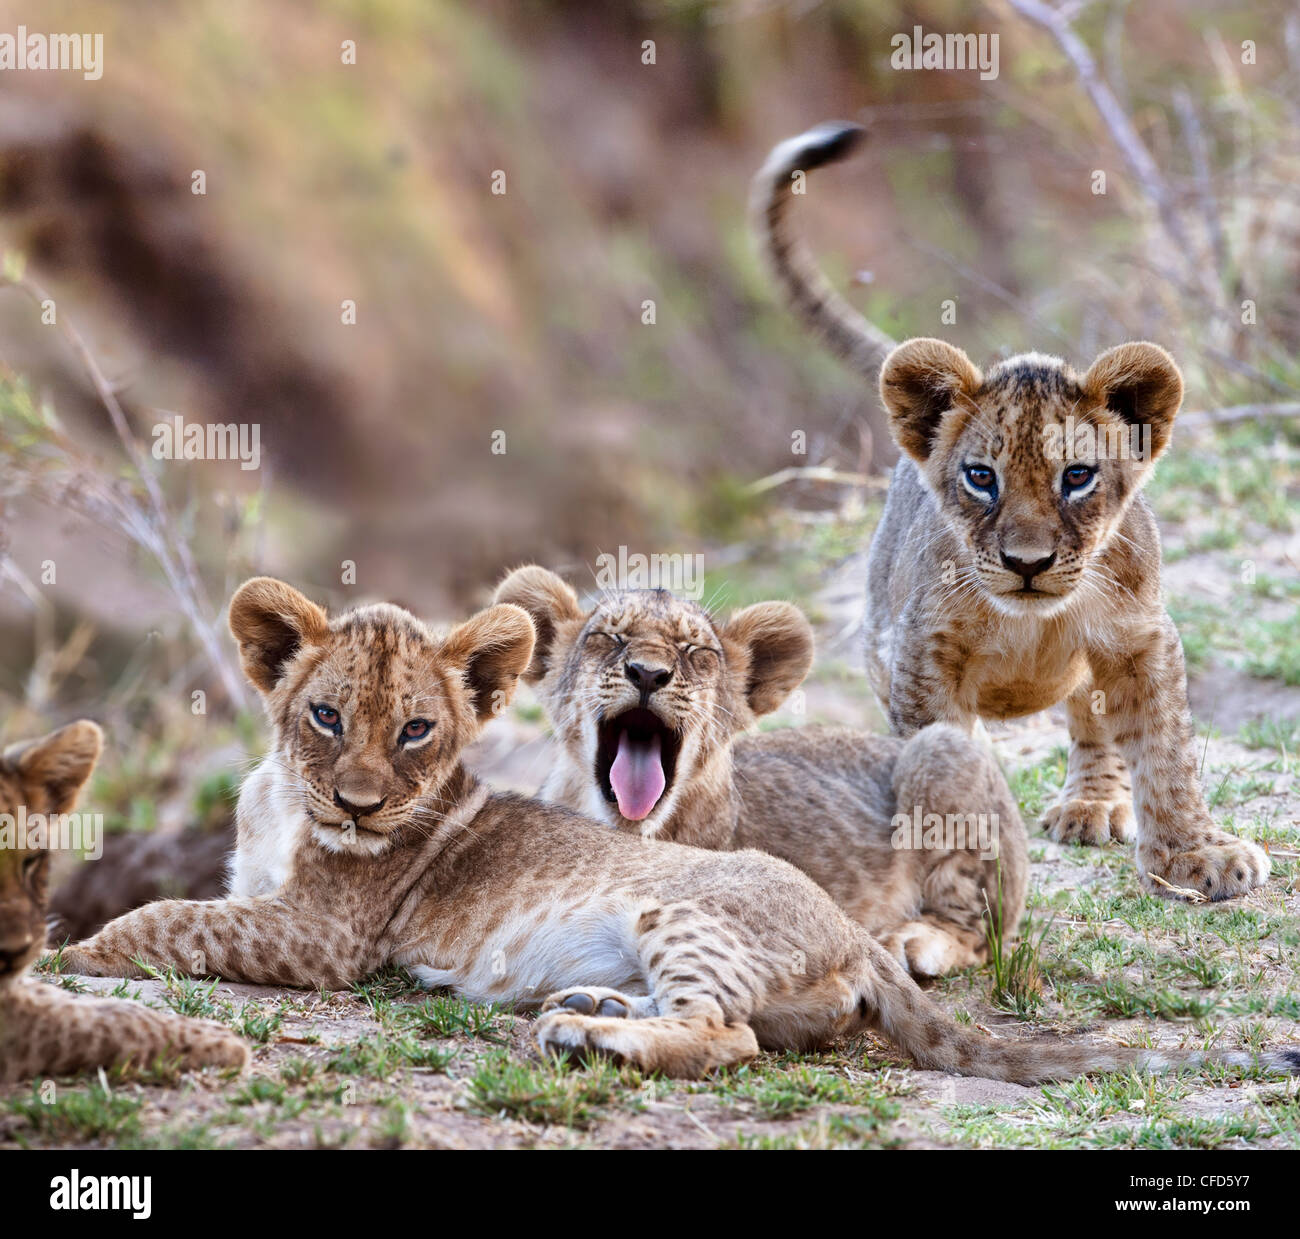 African Lion cubs  - approx 3 months old - near the Luangwa River. South Luangwa National Park, Zambia Stock Photo